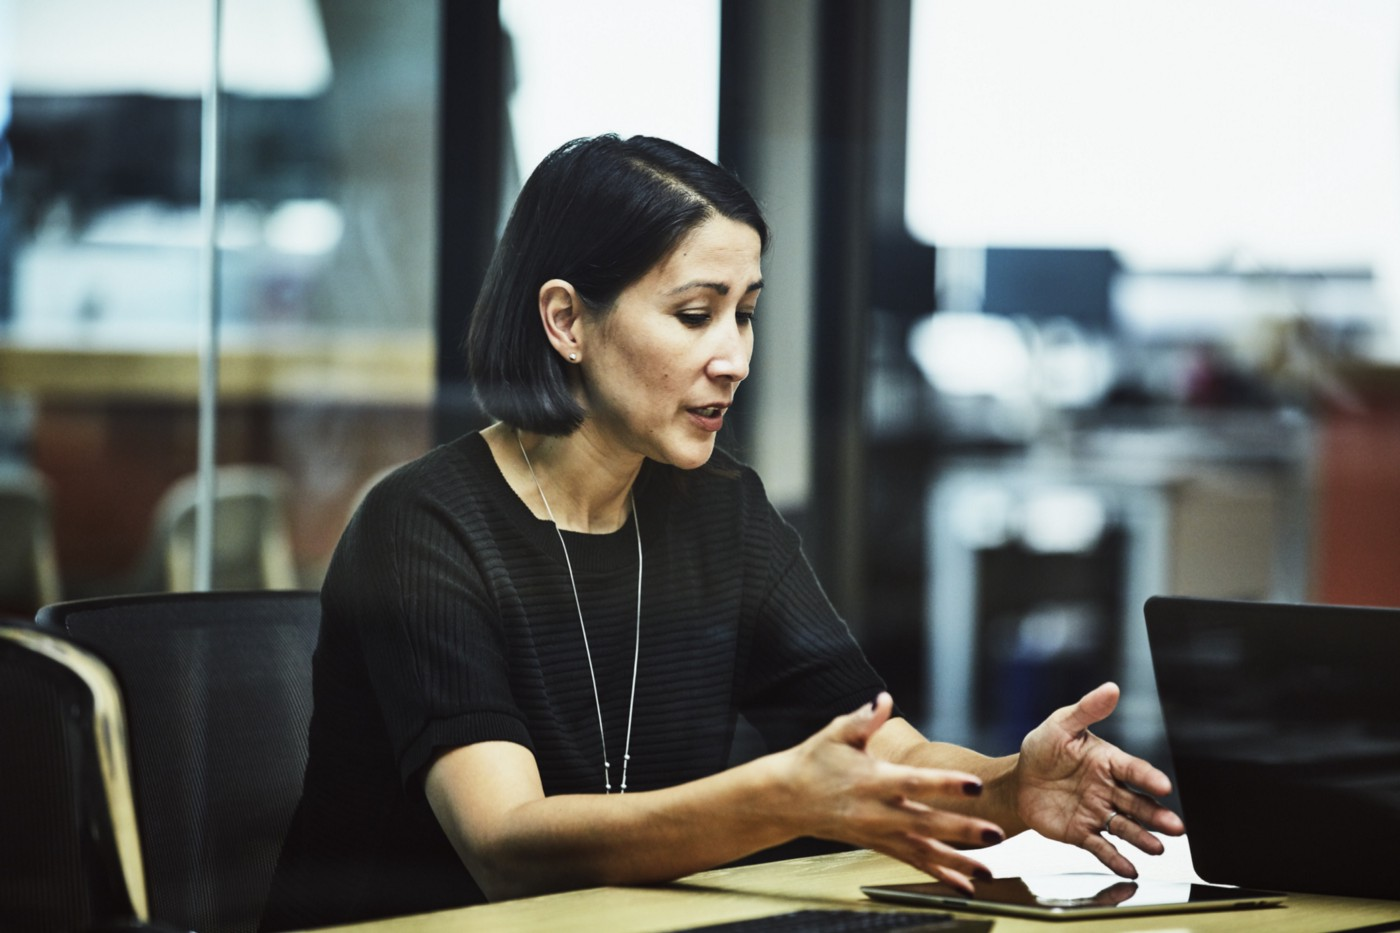 A photo of a woman in a work meeting.